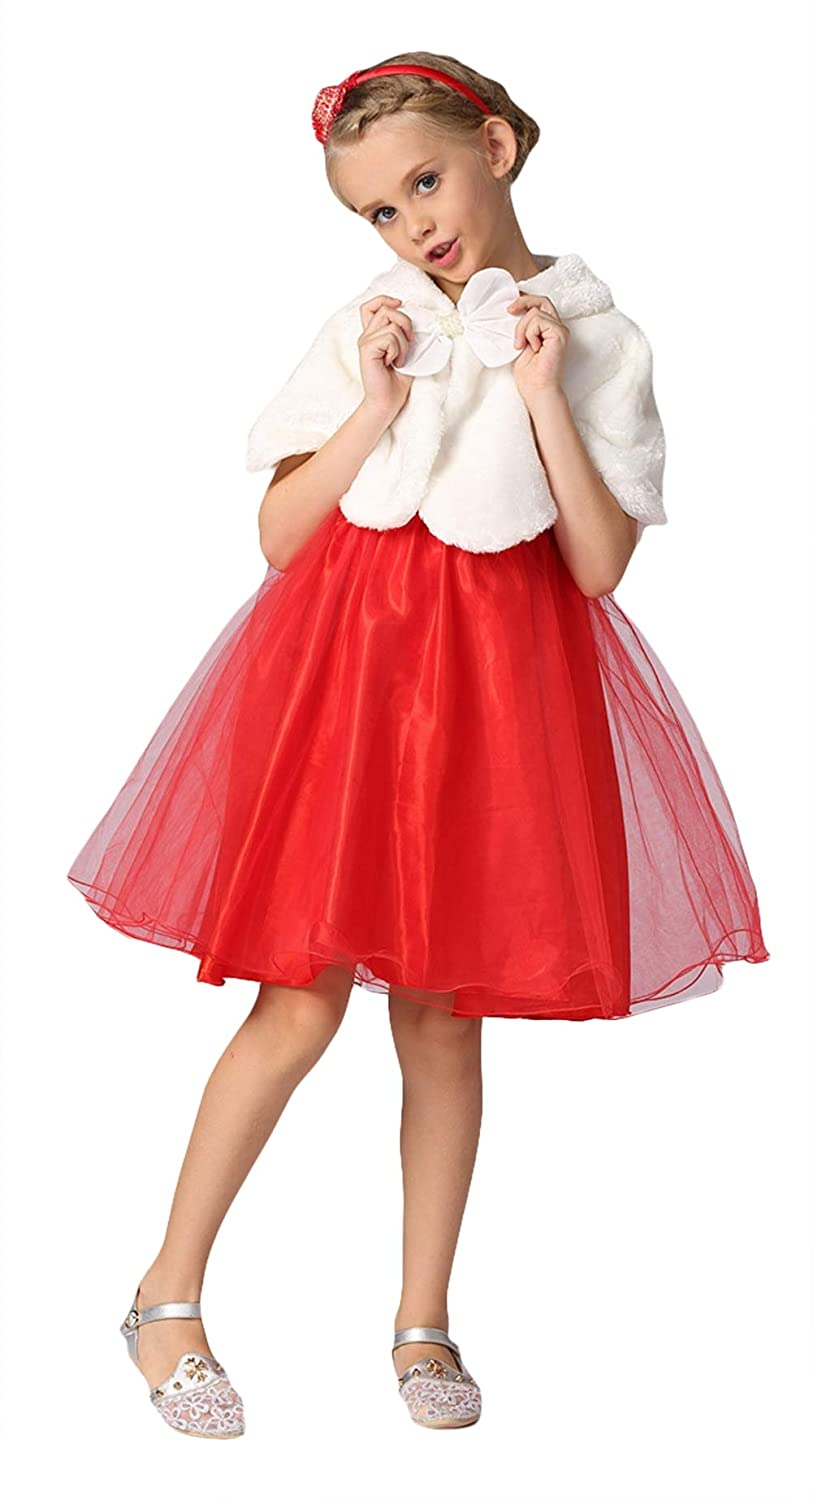 Liveinu Girls Faux Fur Shawl Flower Girl Wraps Cape Princess Bolero Shrug Dress Coat with Bow